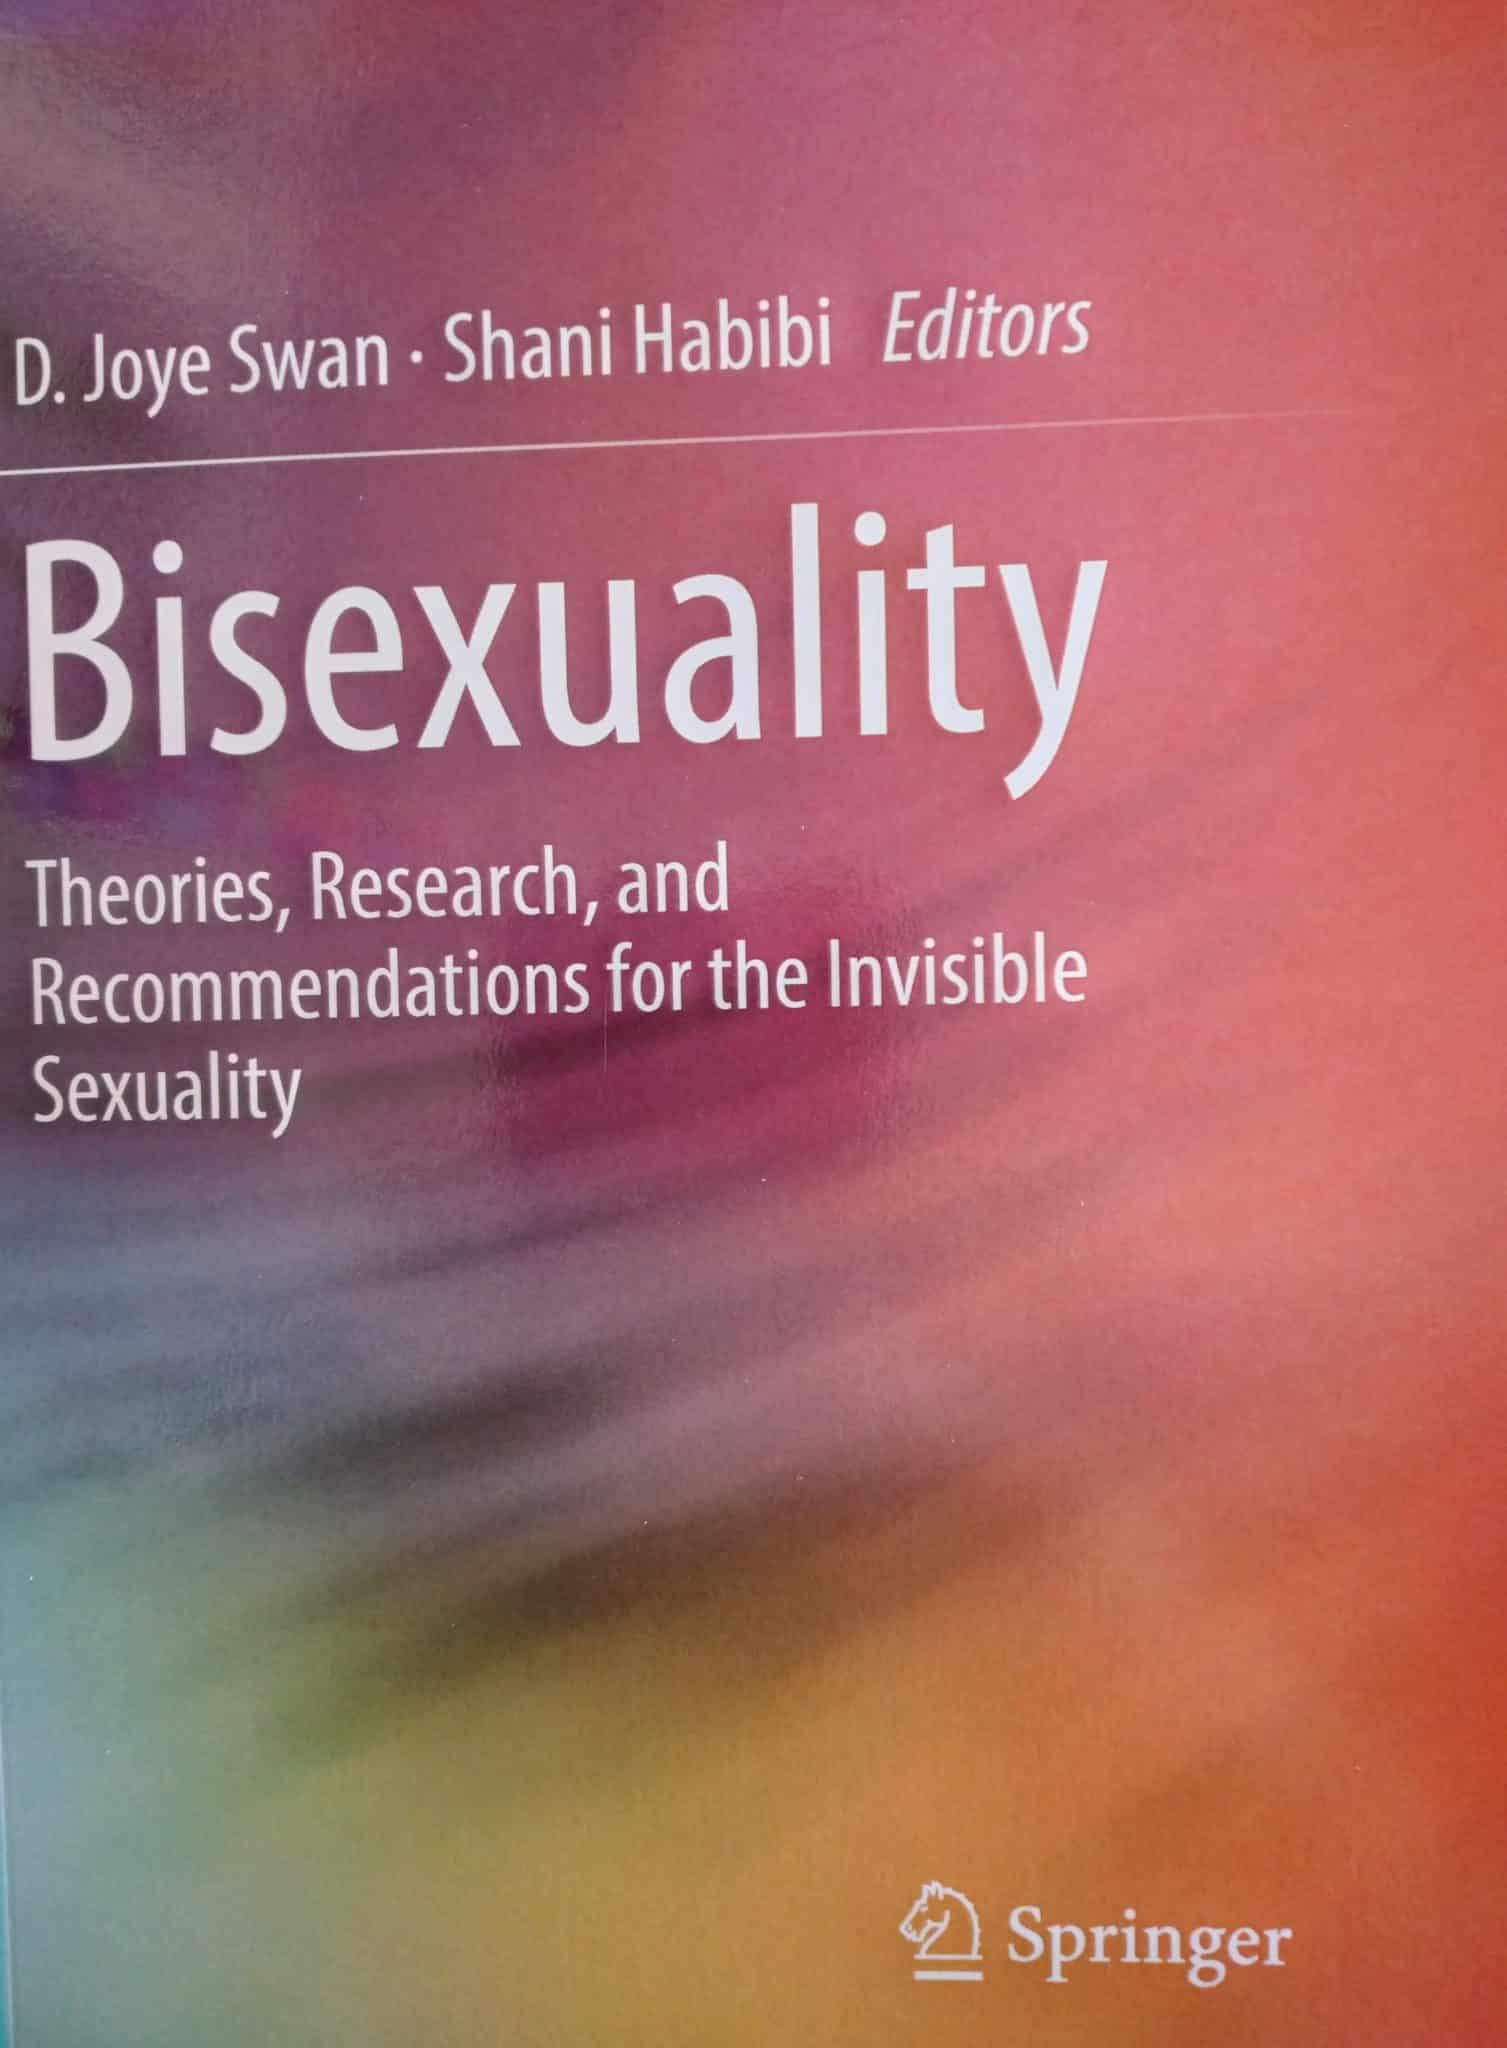 Bisexuality. Theories, Research, And Recommmendations For The Invisible Sexuality